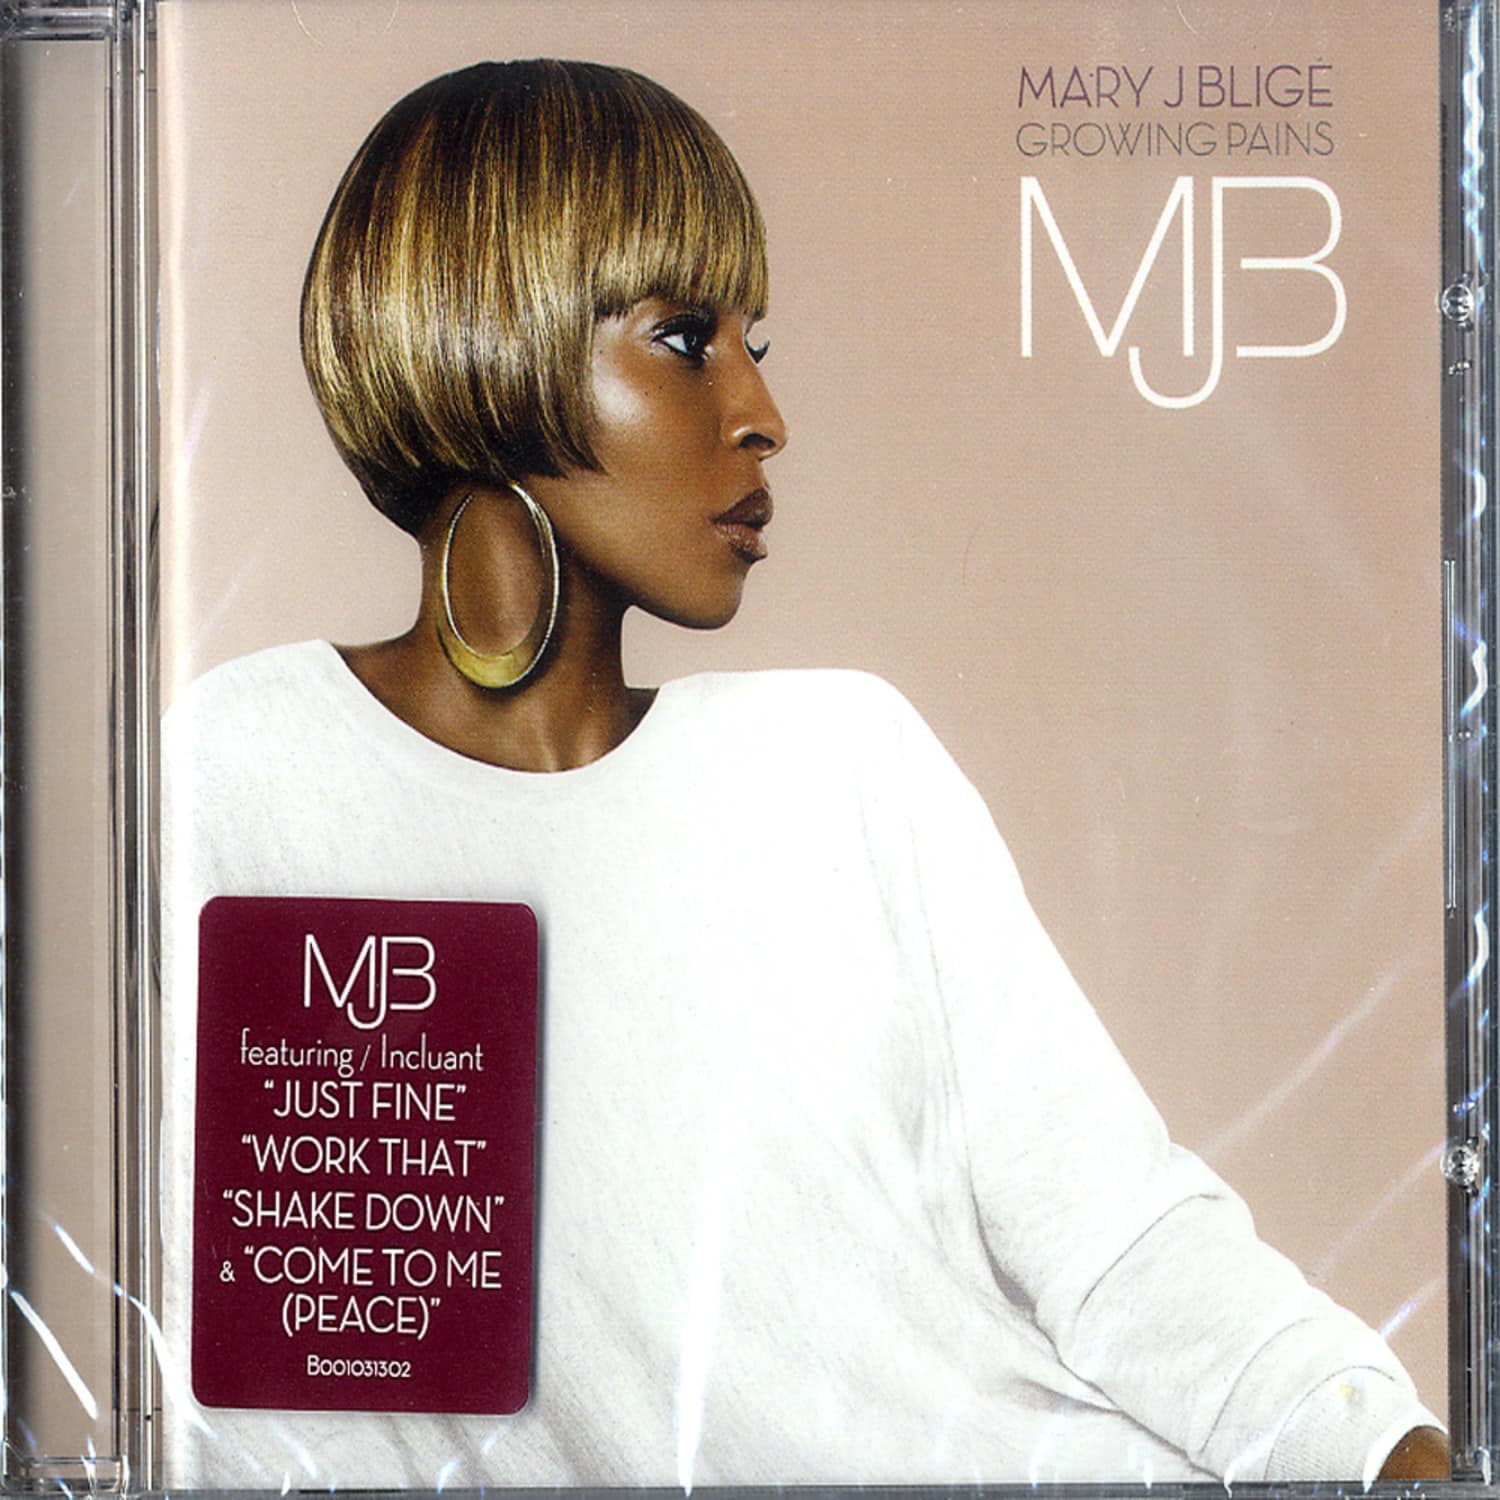 Mary J. Blige - GROWINGS PAINS